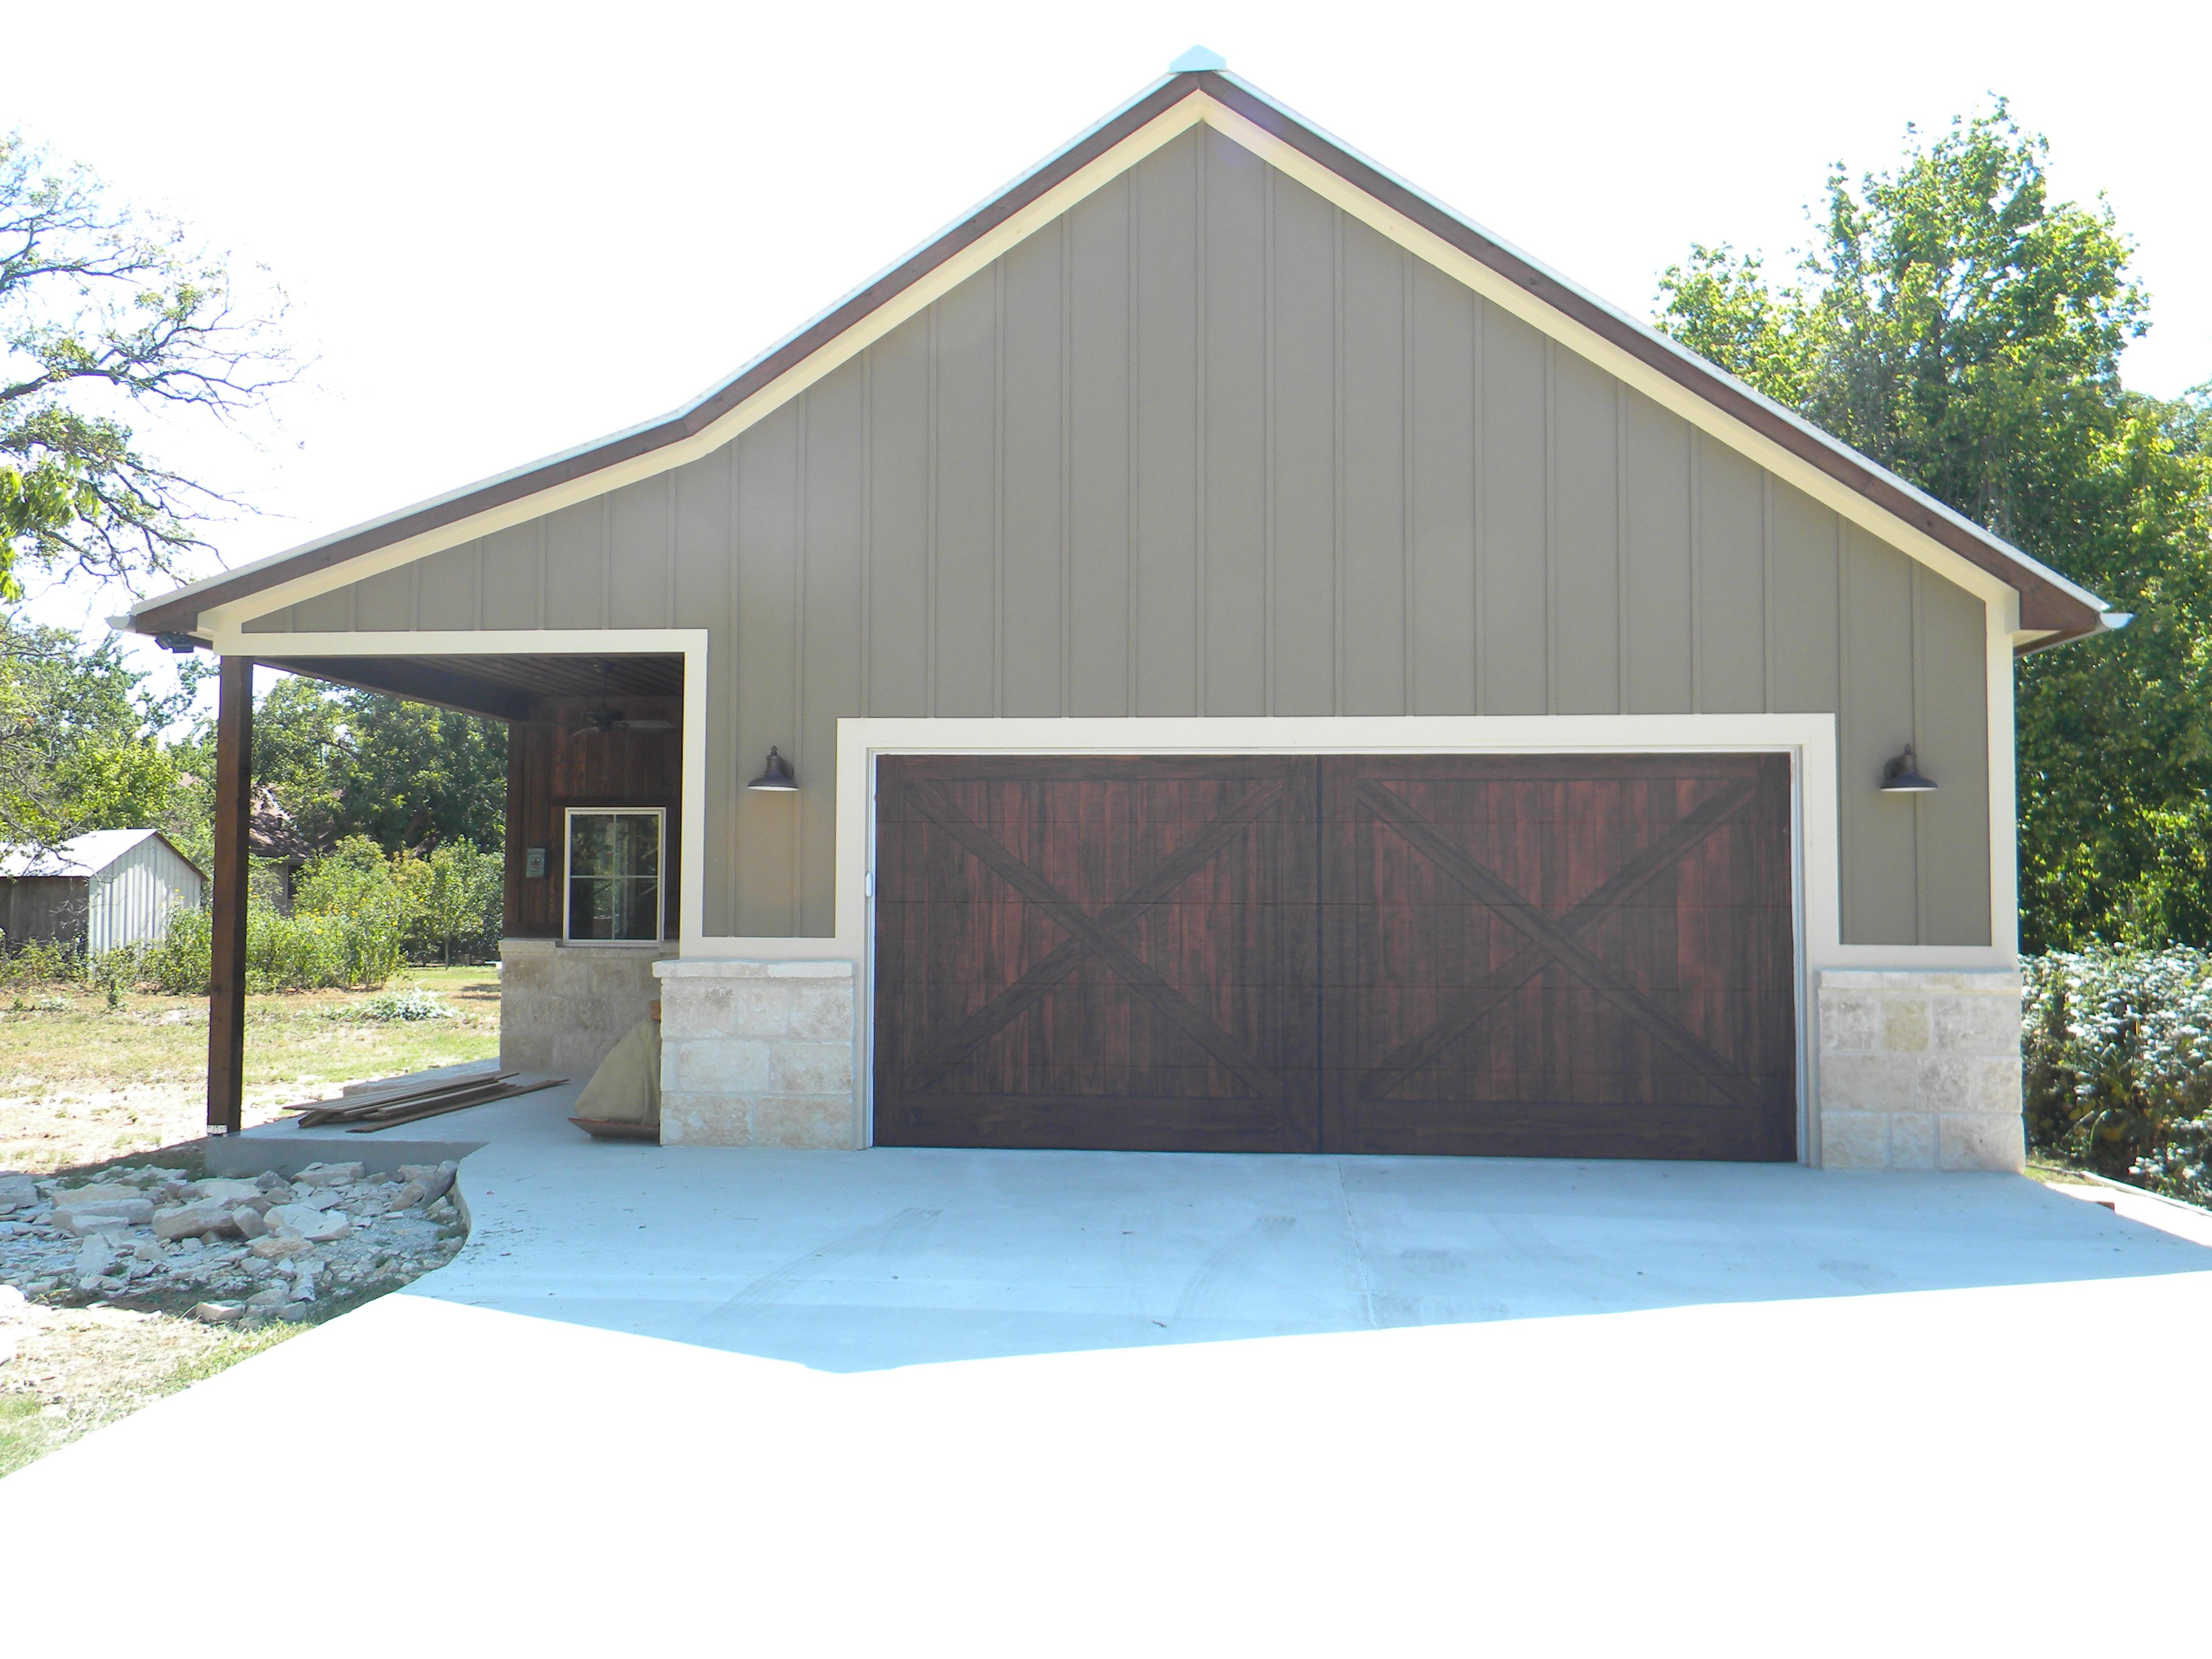 Barn door garage doors shining home design for 7x9 insulated garage door